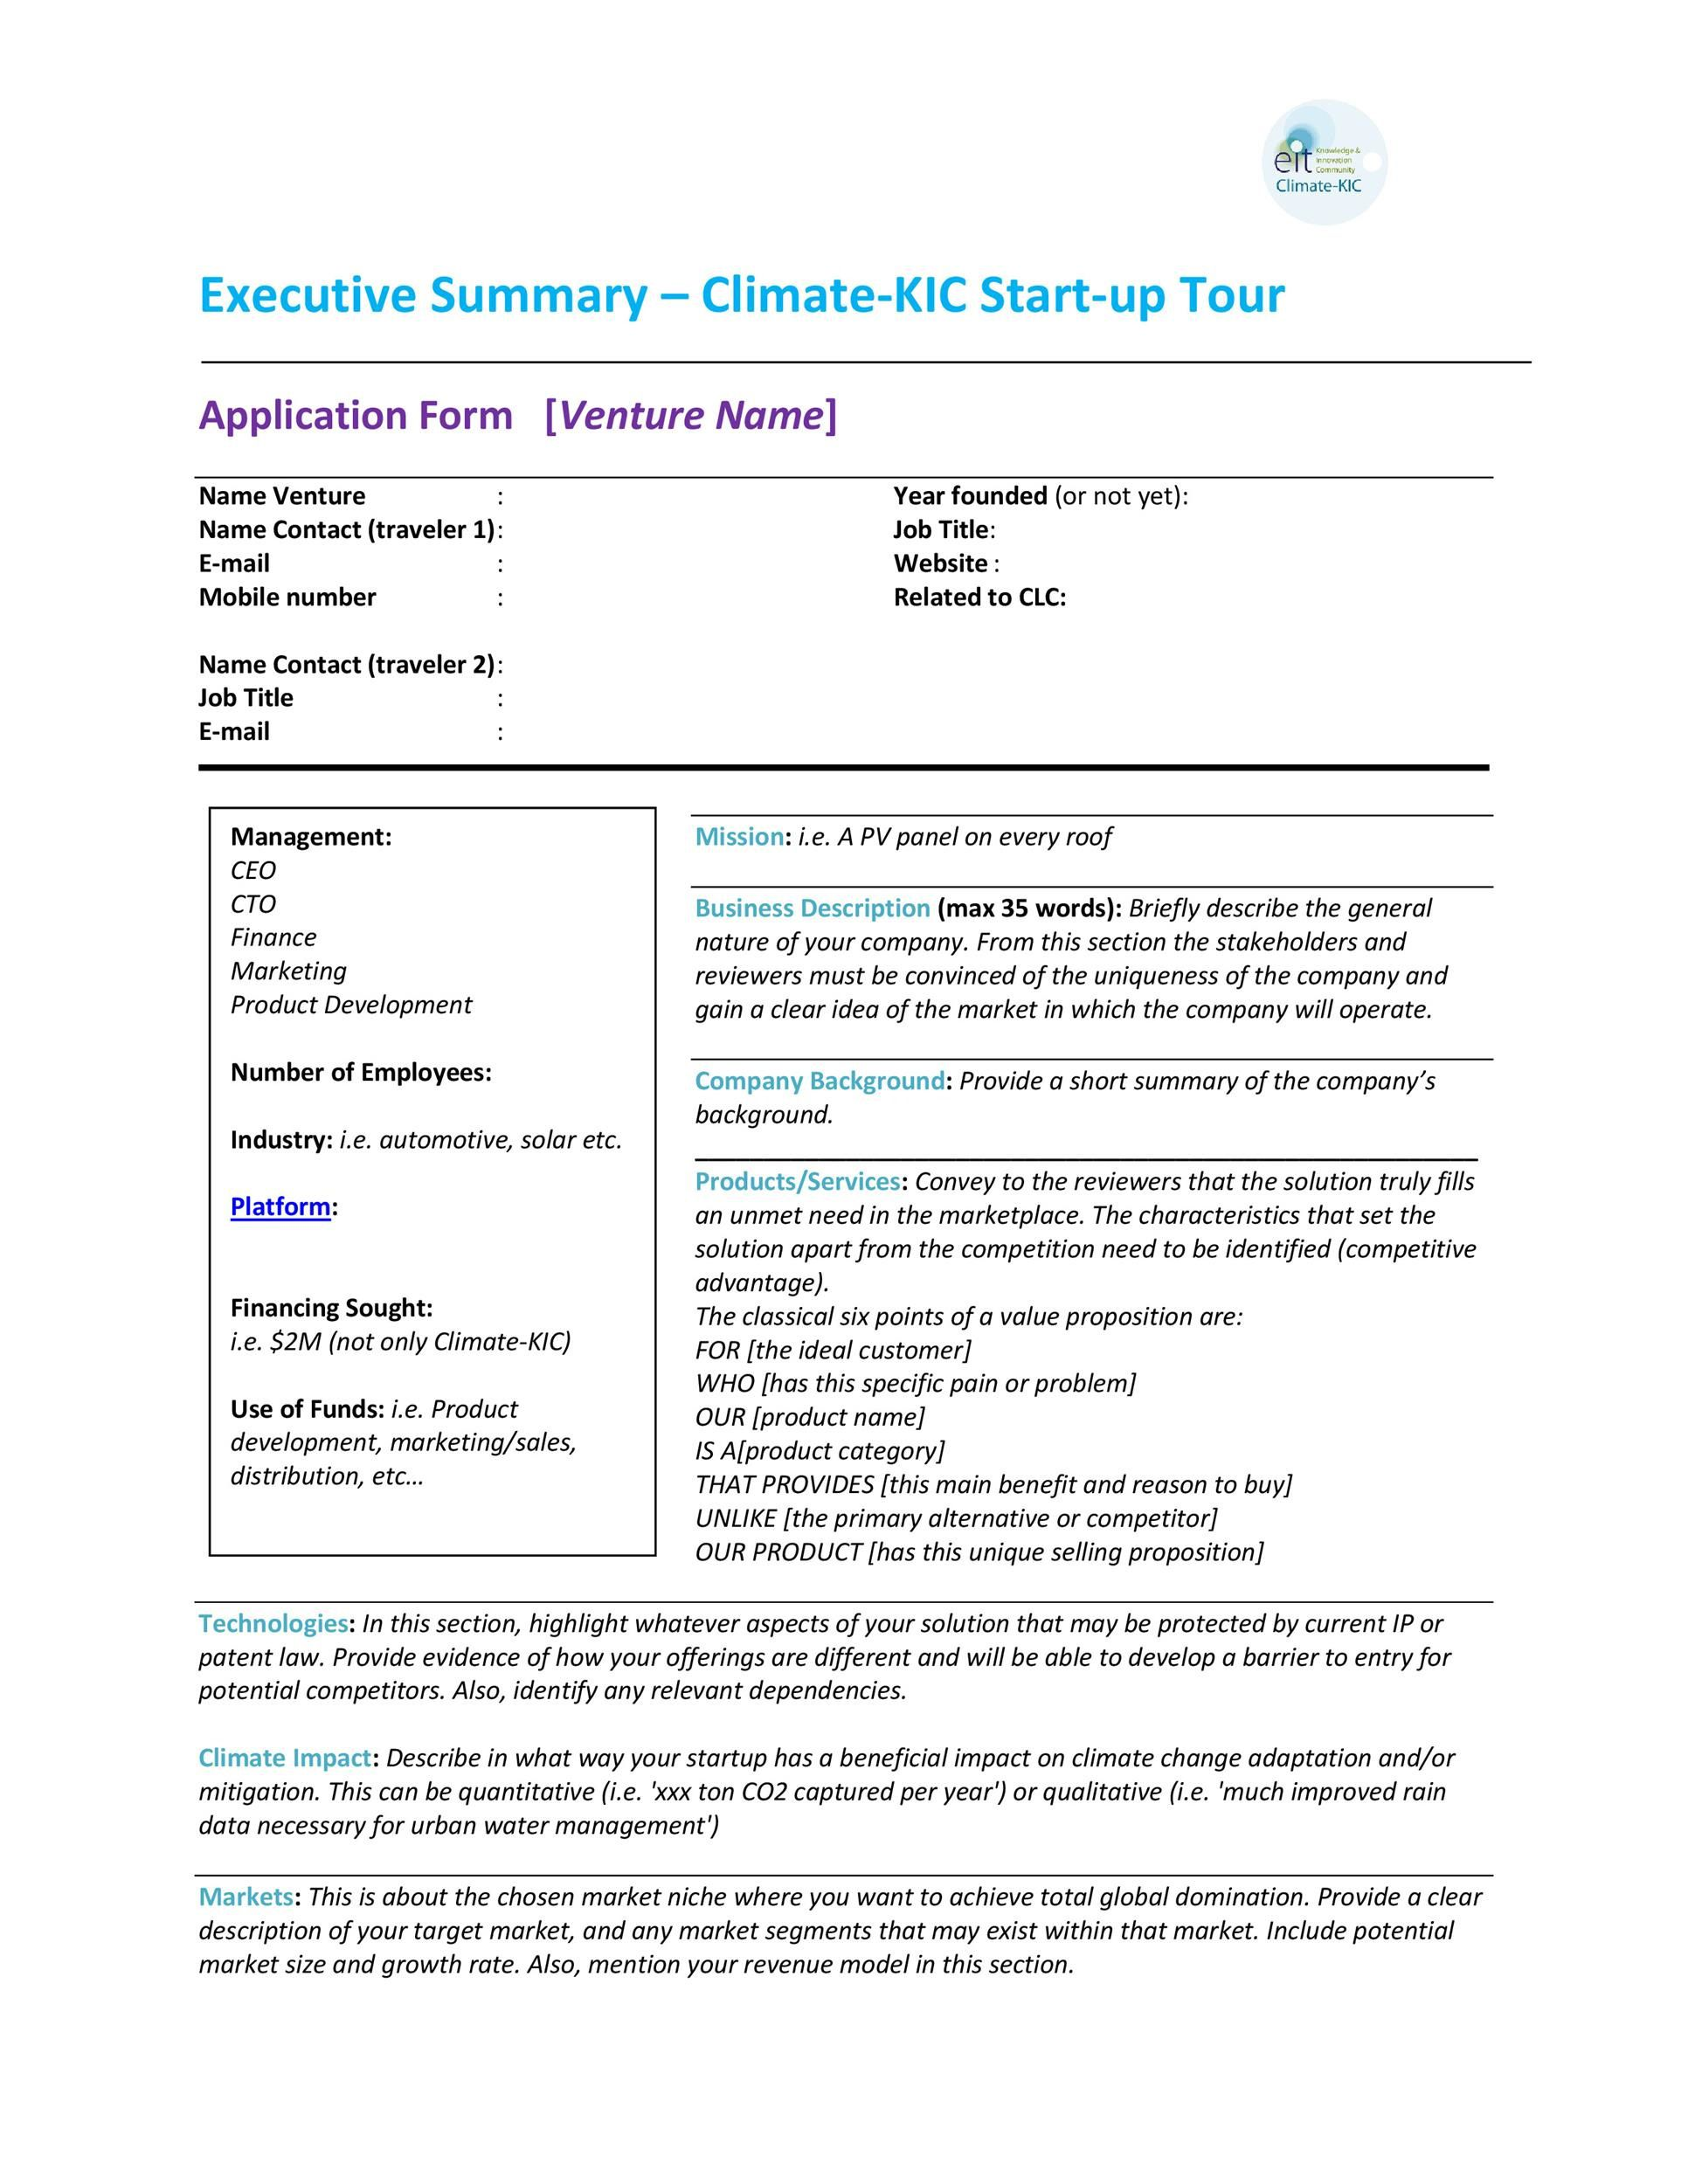 007 Top Executive Summary Report Word Template Image Full